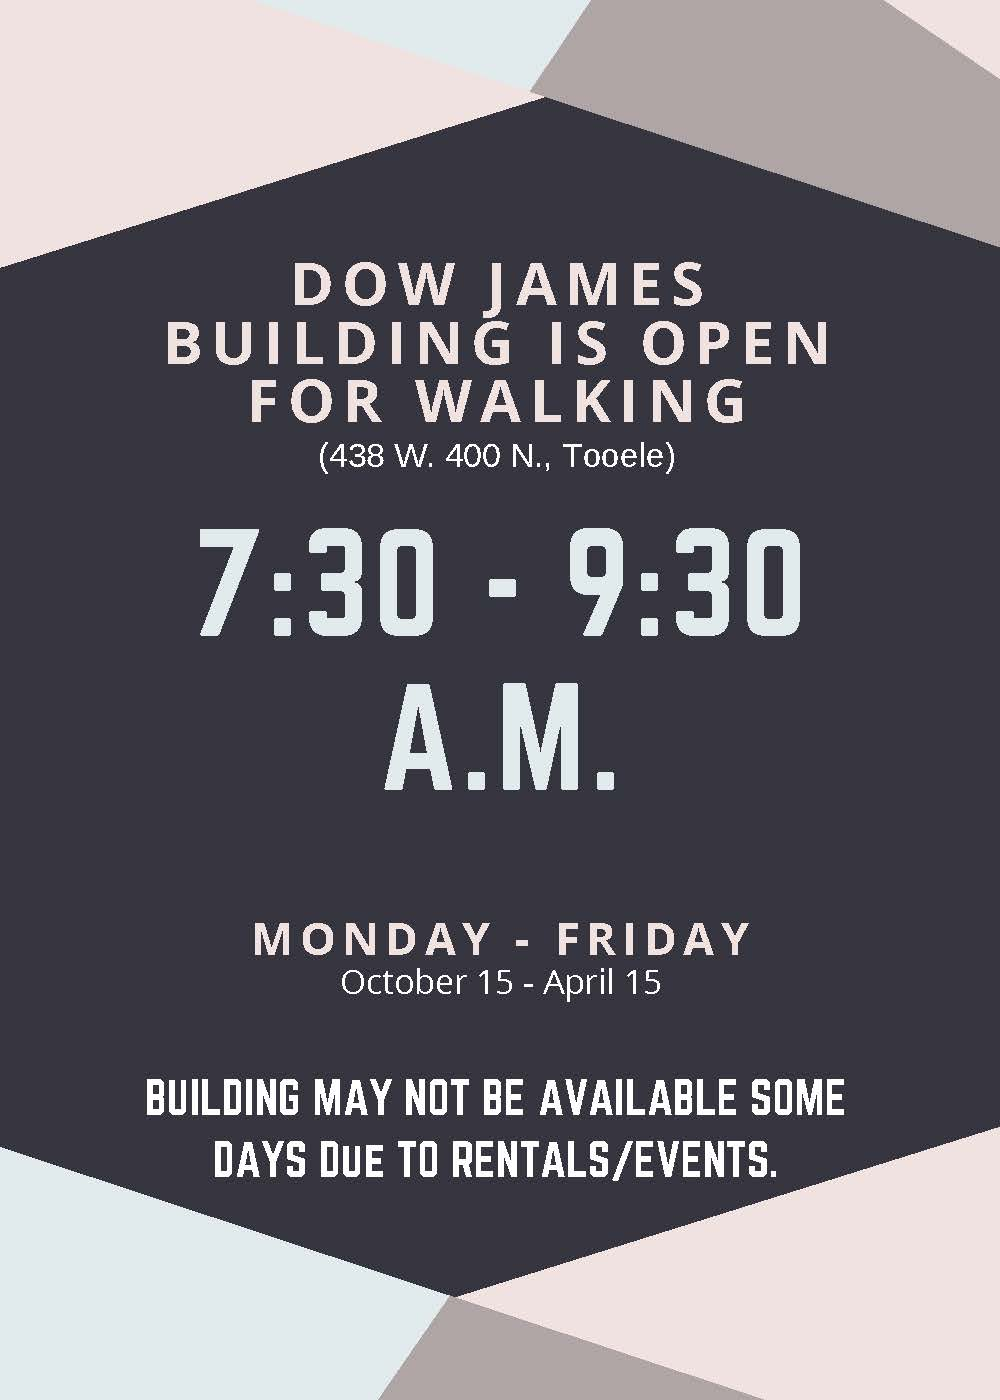 Dow James Building is Open for Walking 2020